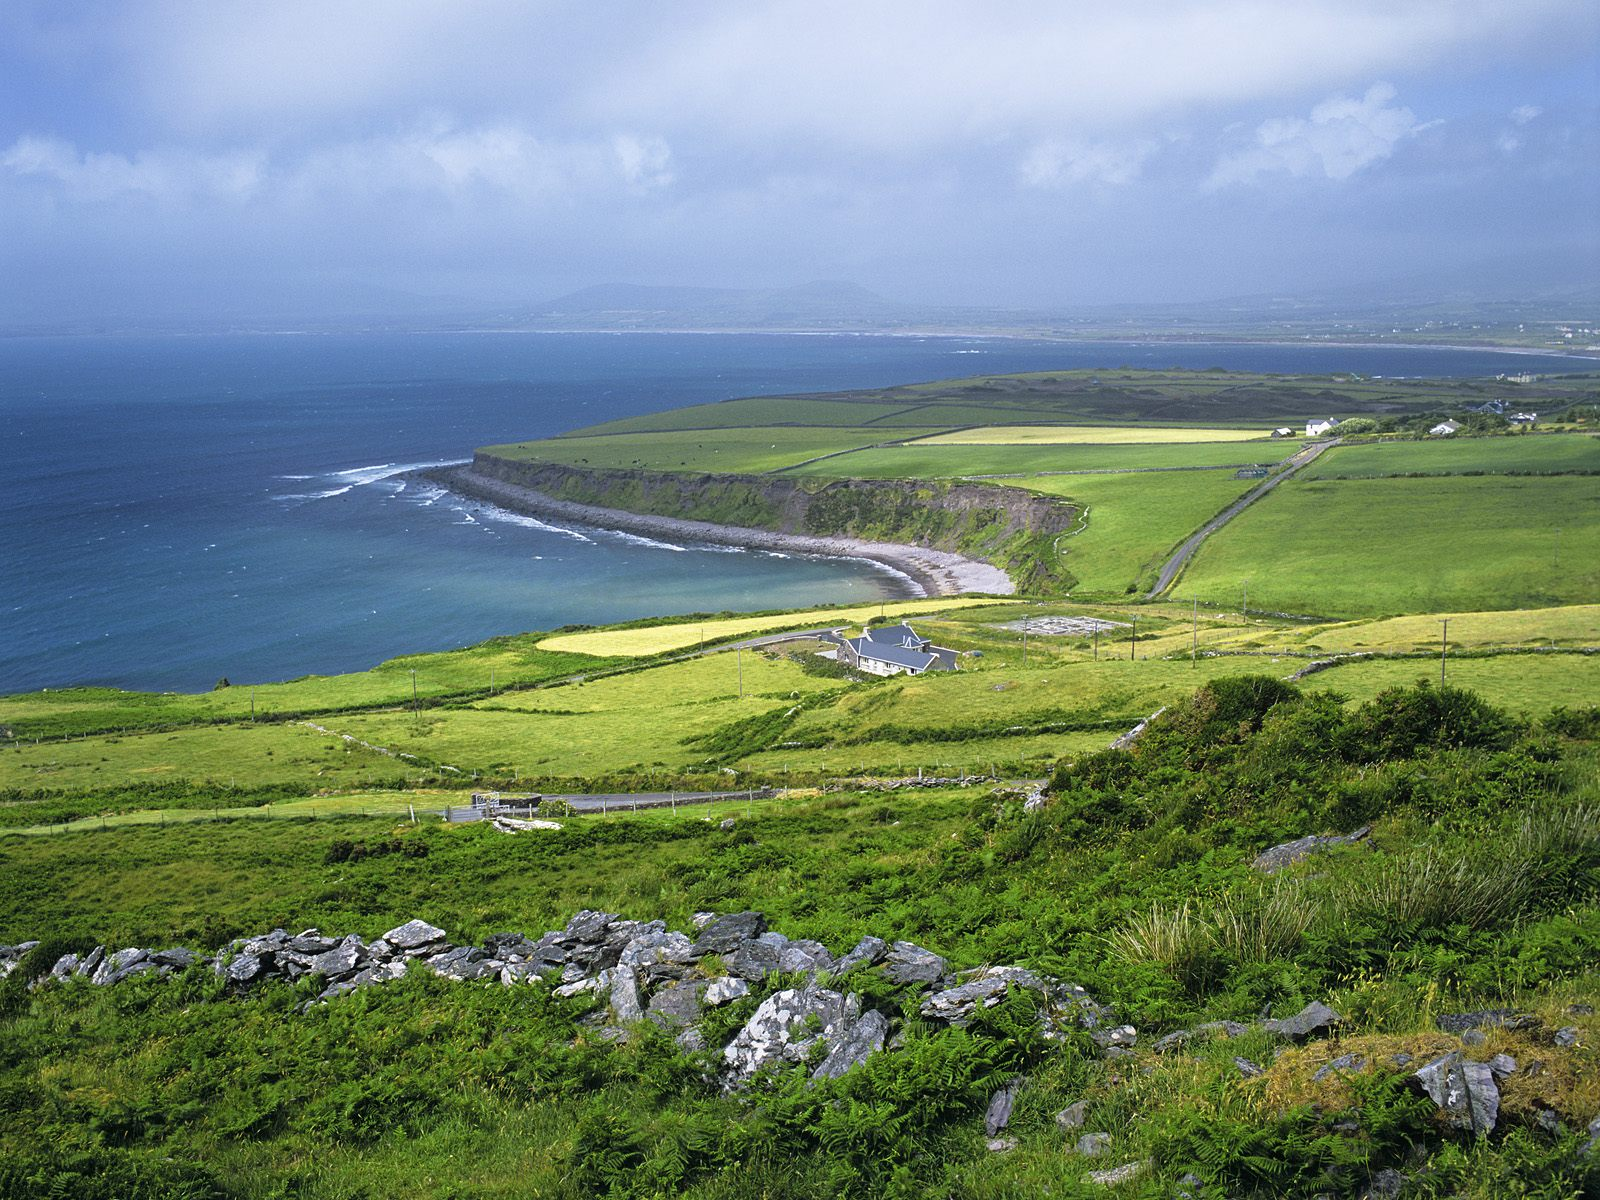 Ballinskelligs Bay, County Kerry, Ireland